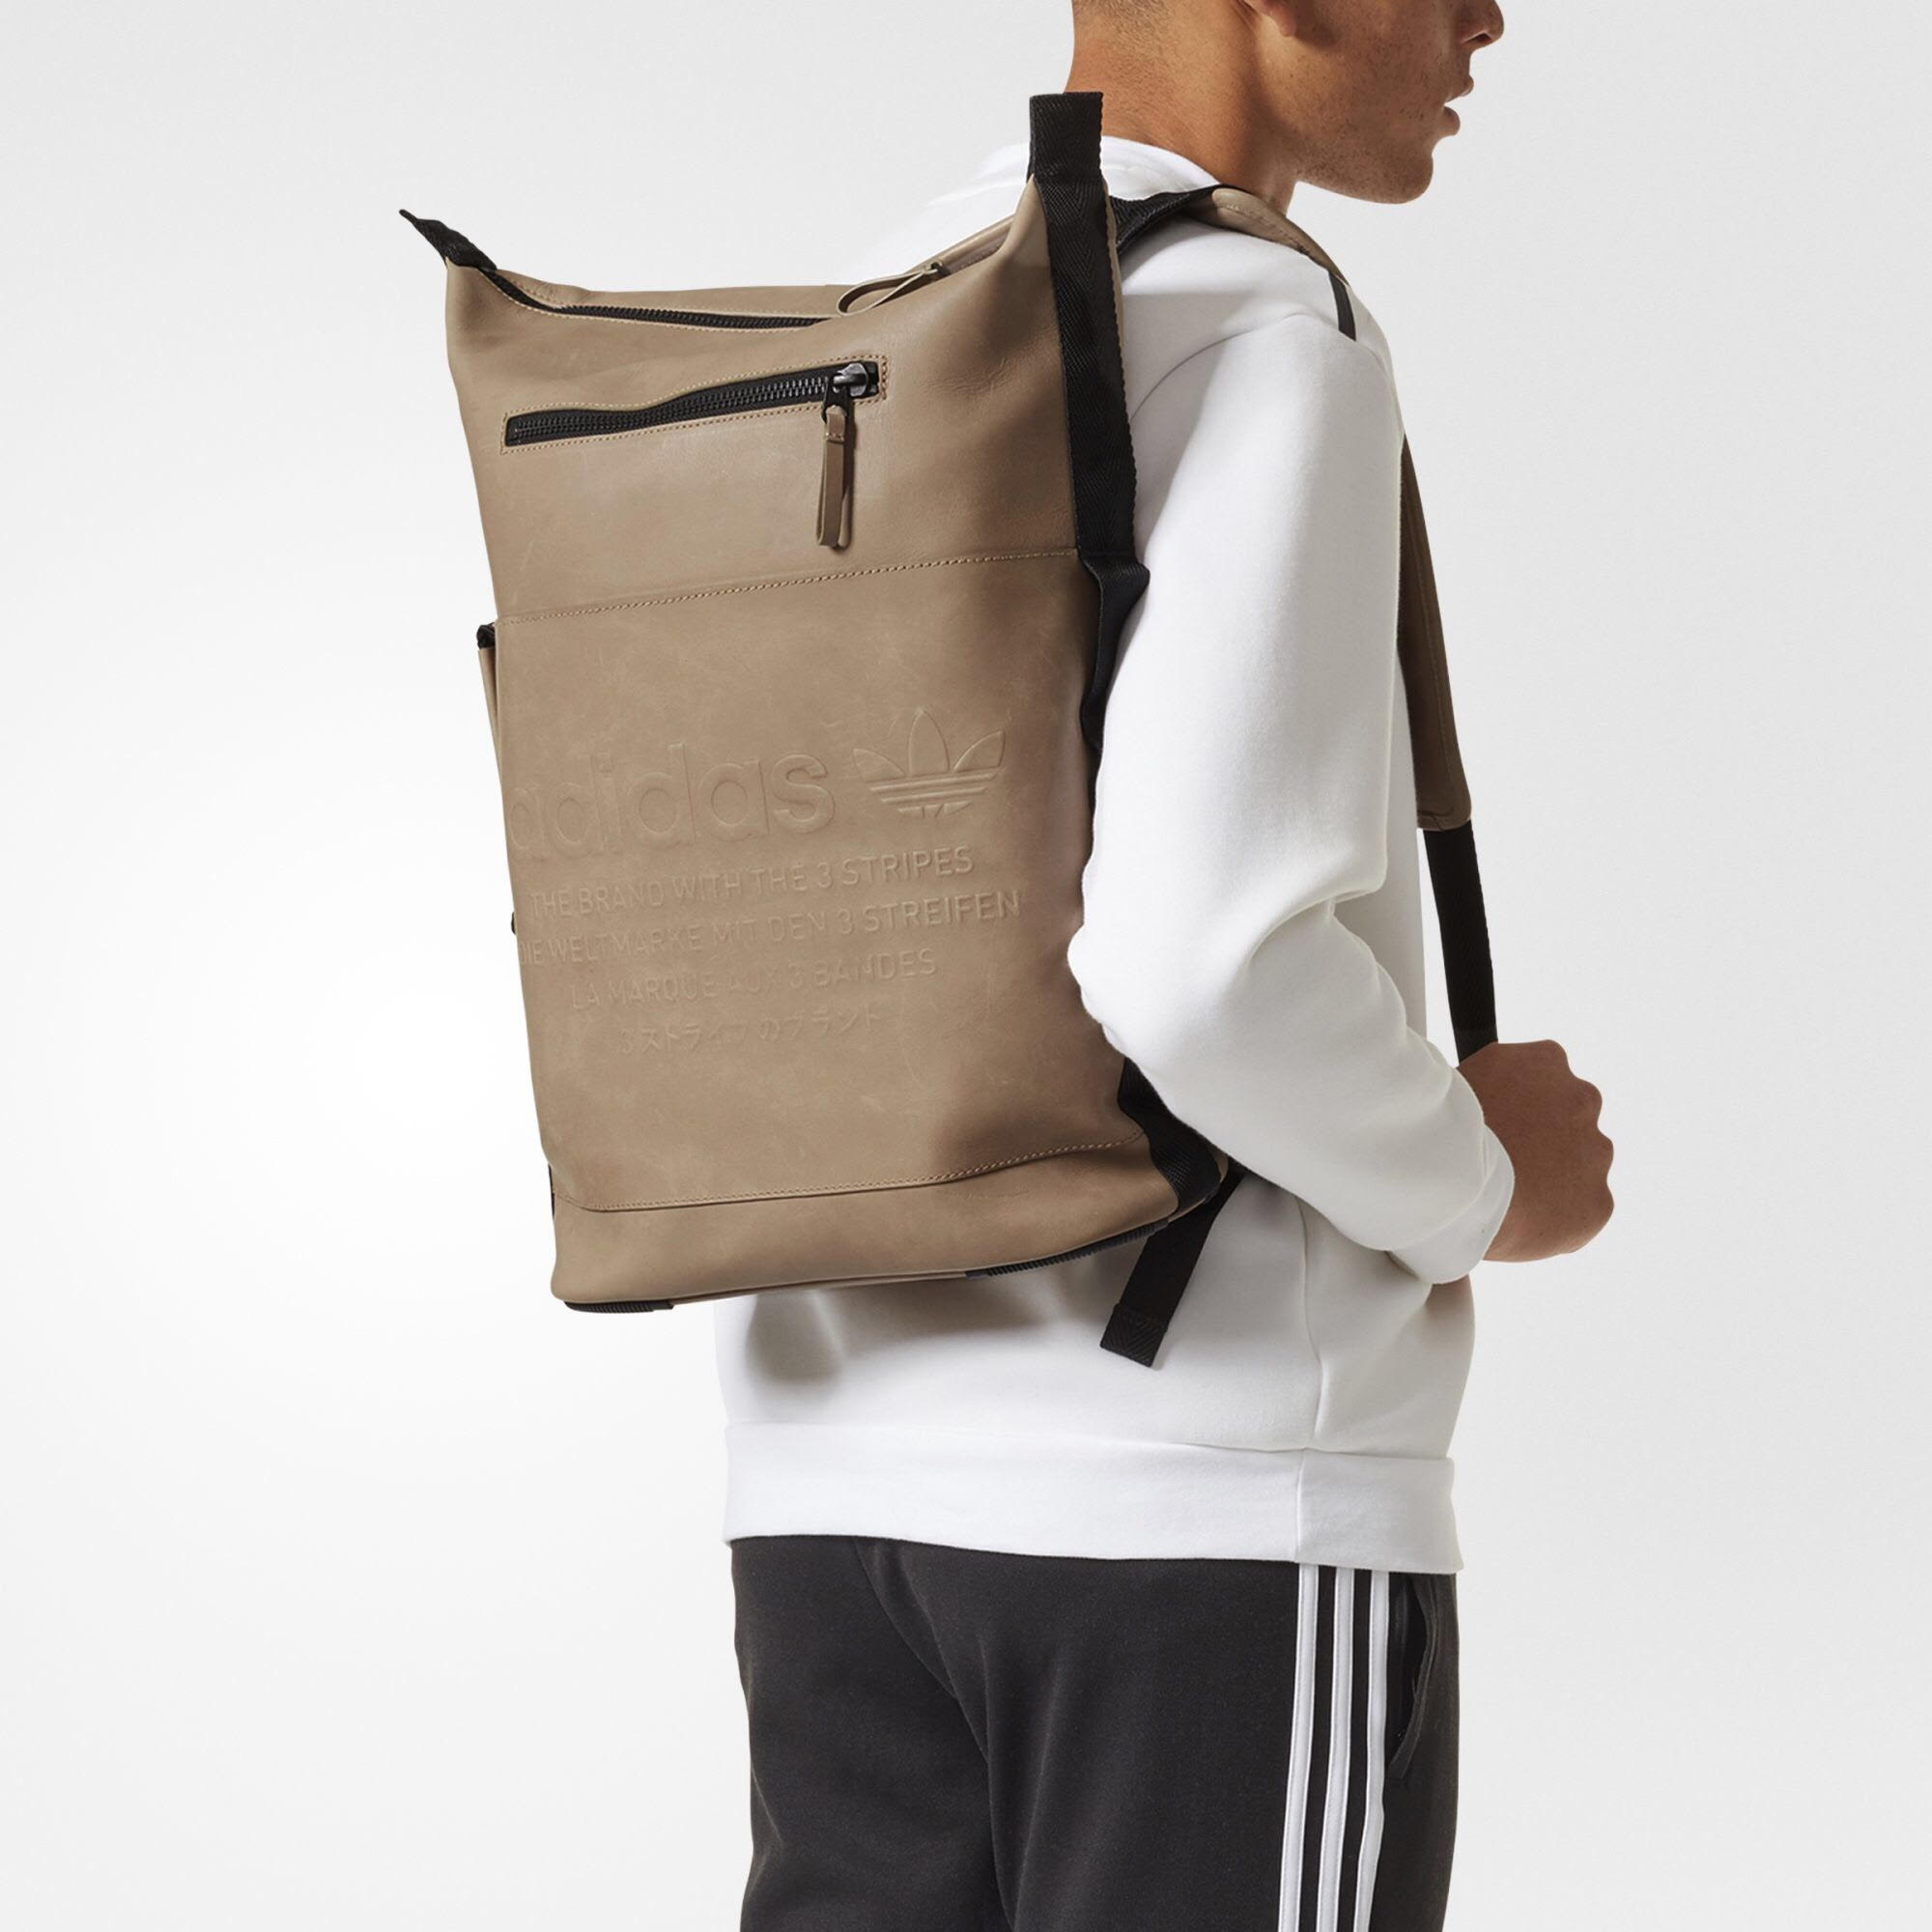 e08149402f2 Adidas Adidas Originals Nmd Day Backpack Tan Suede And Leather   Grailed